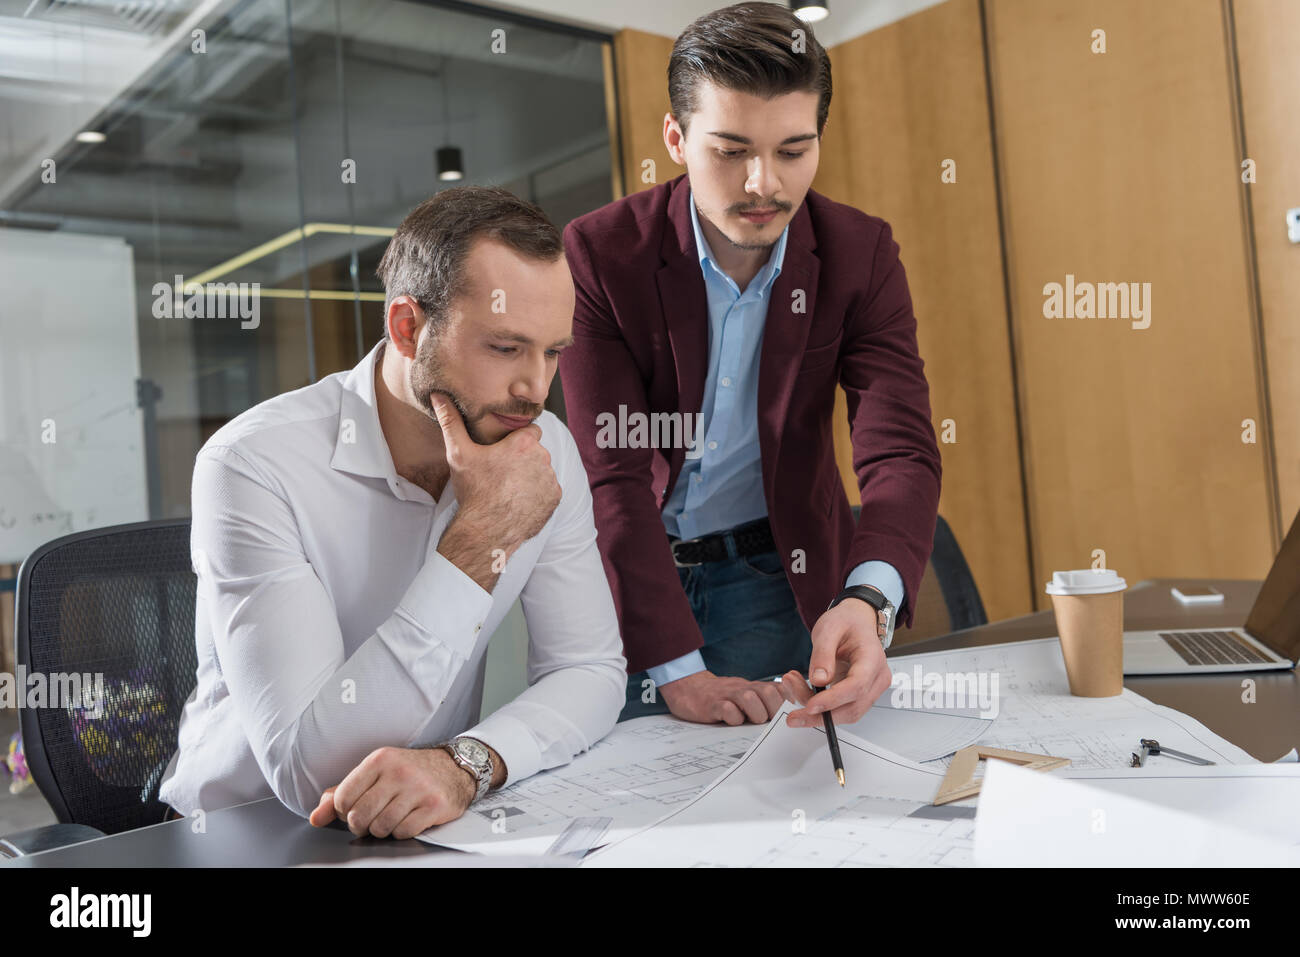 thoughtful architects brainstorming over building plans at office Stock Photo